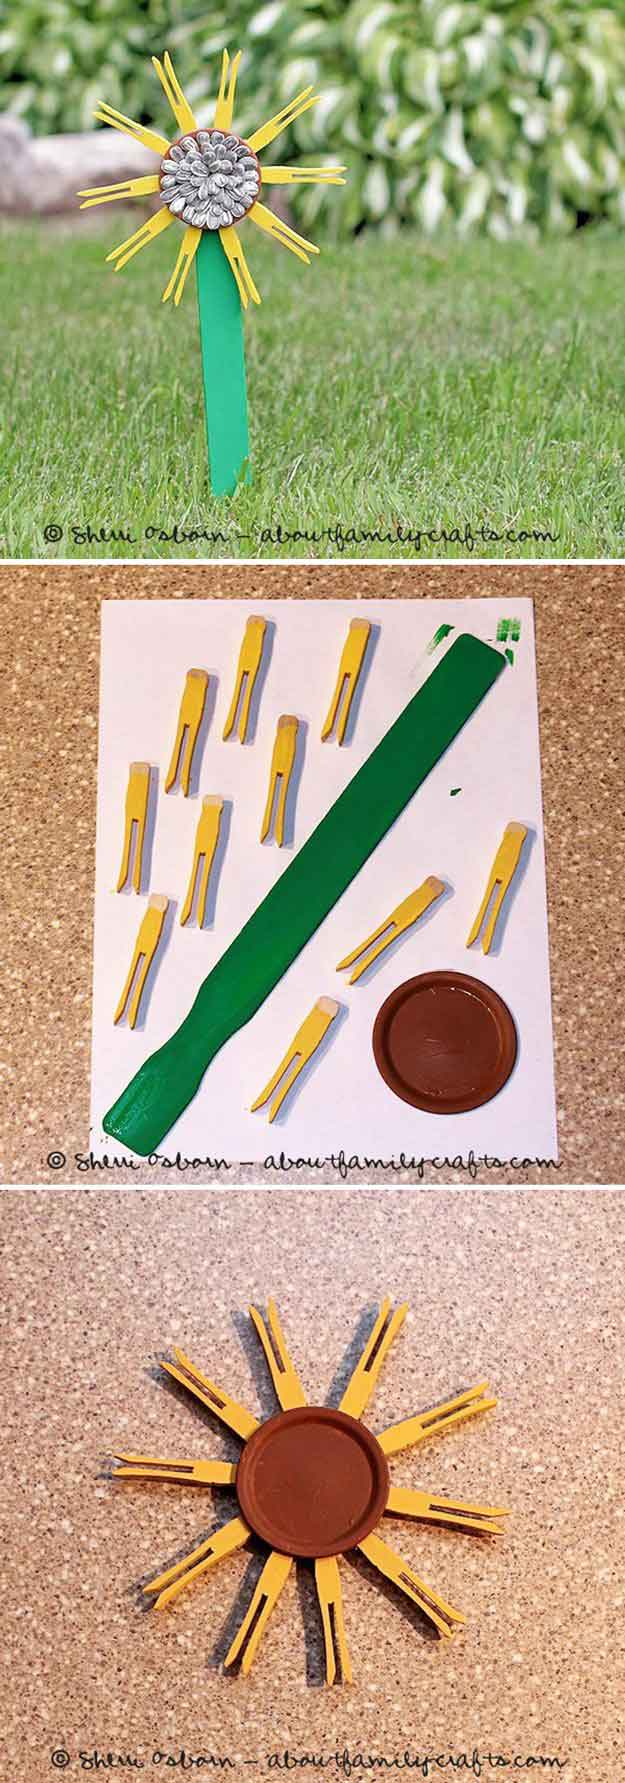 Clothespin Sunflower Craft | 17 Amazing DIY Paint Chip Projects